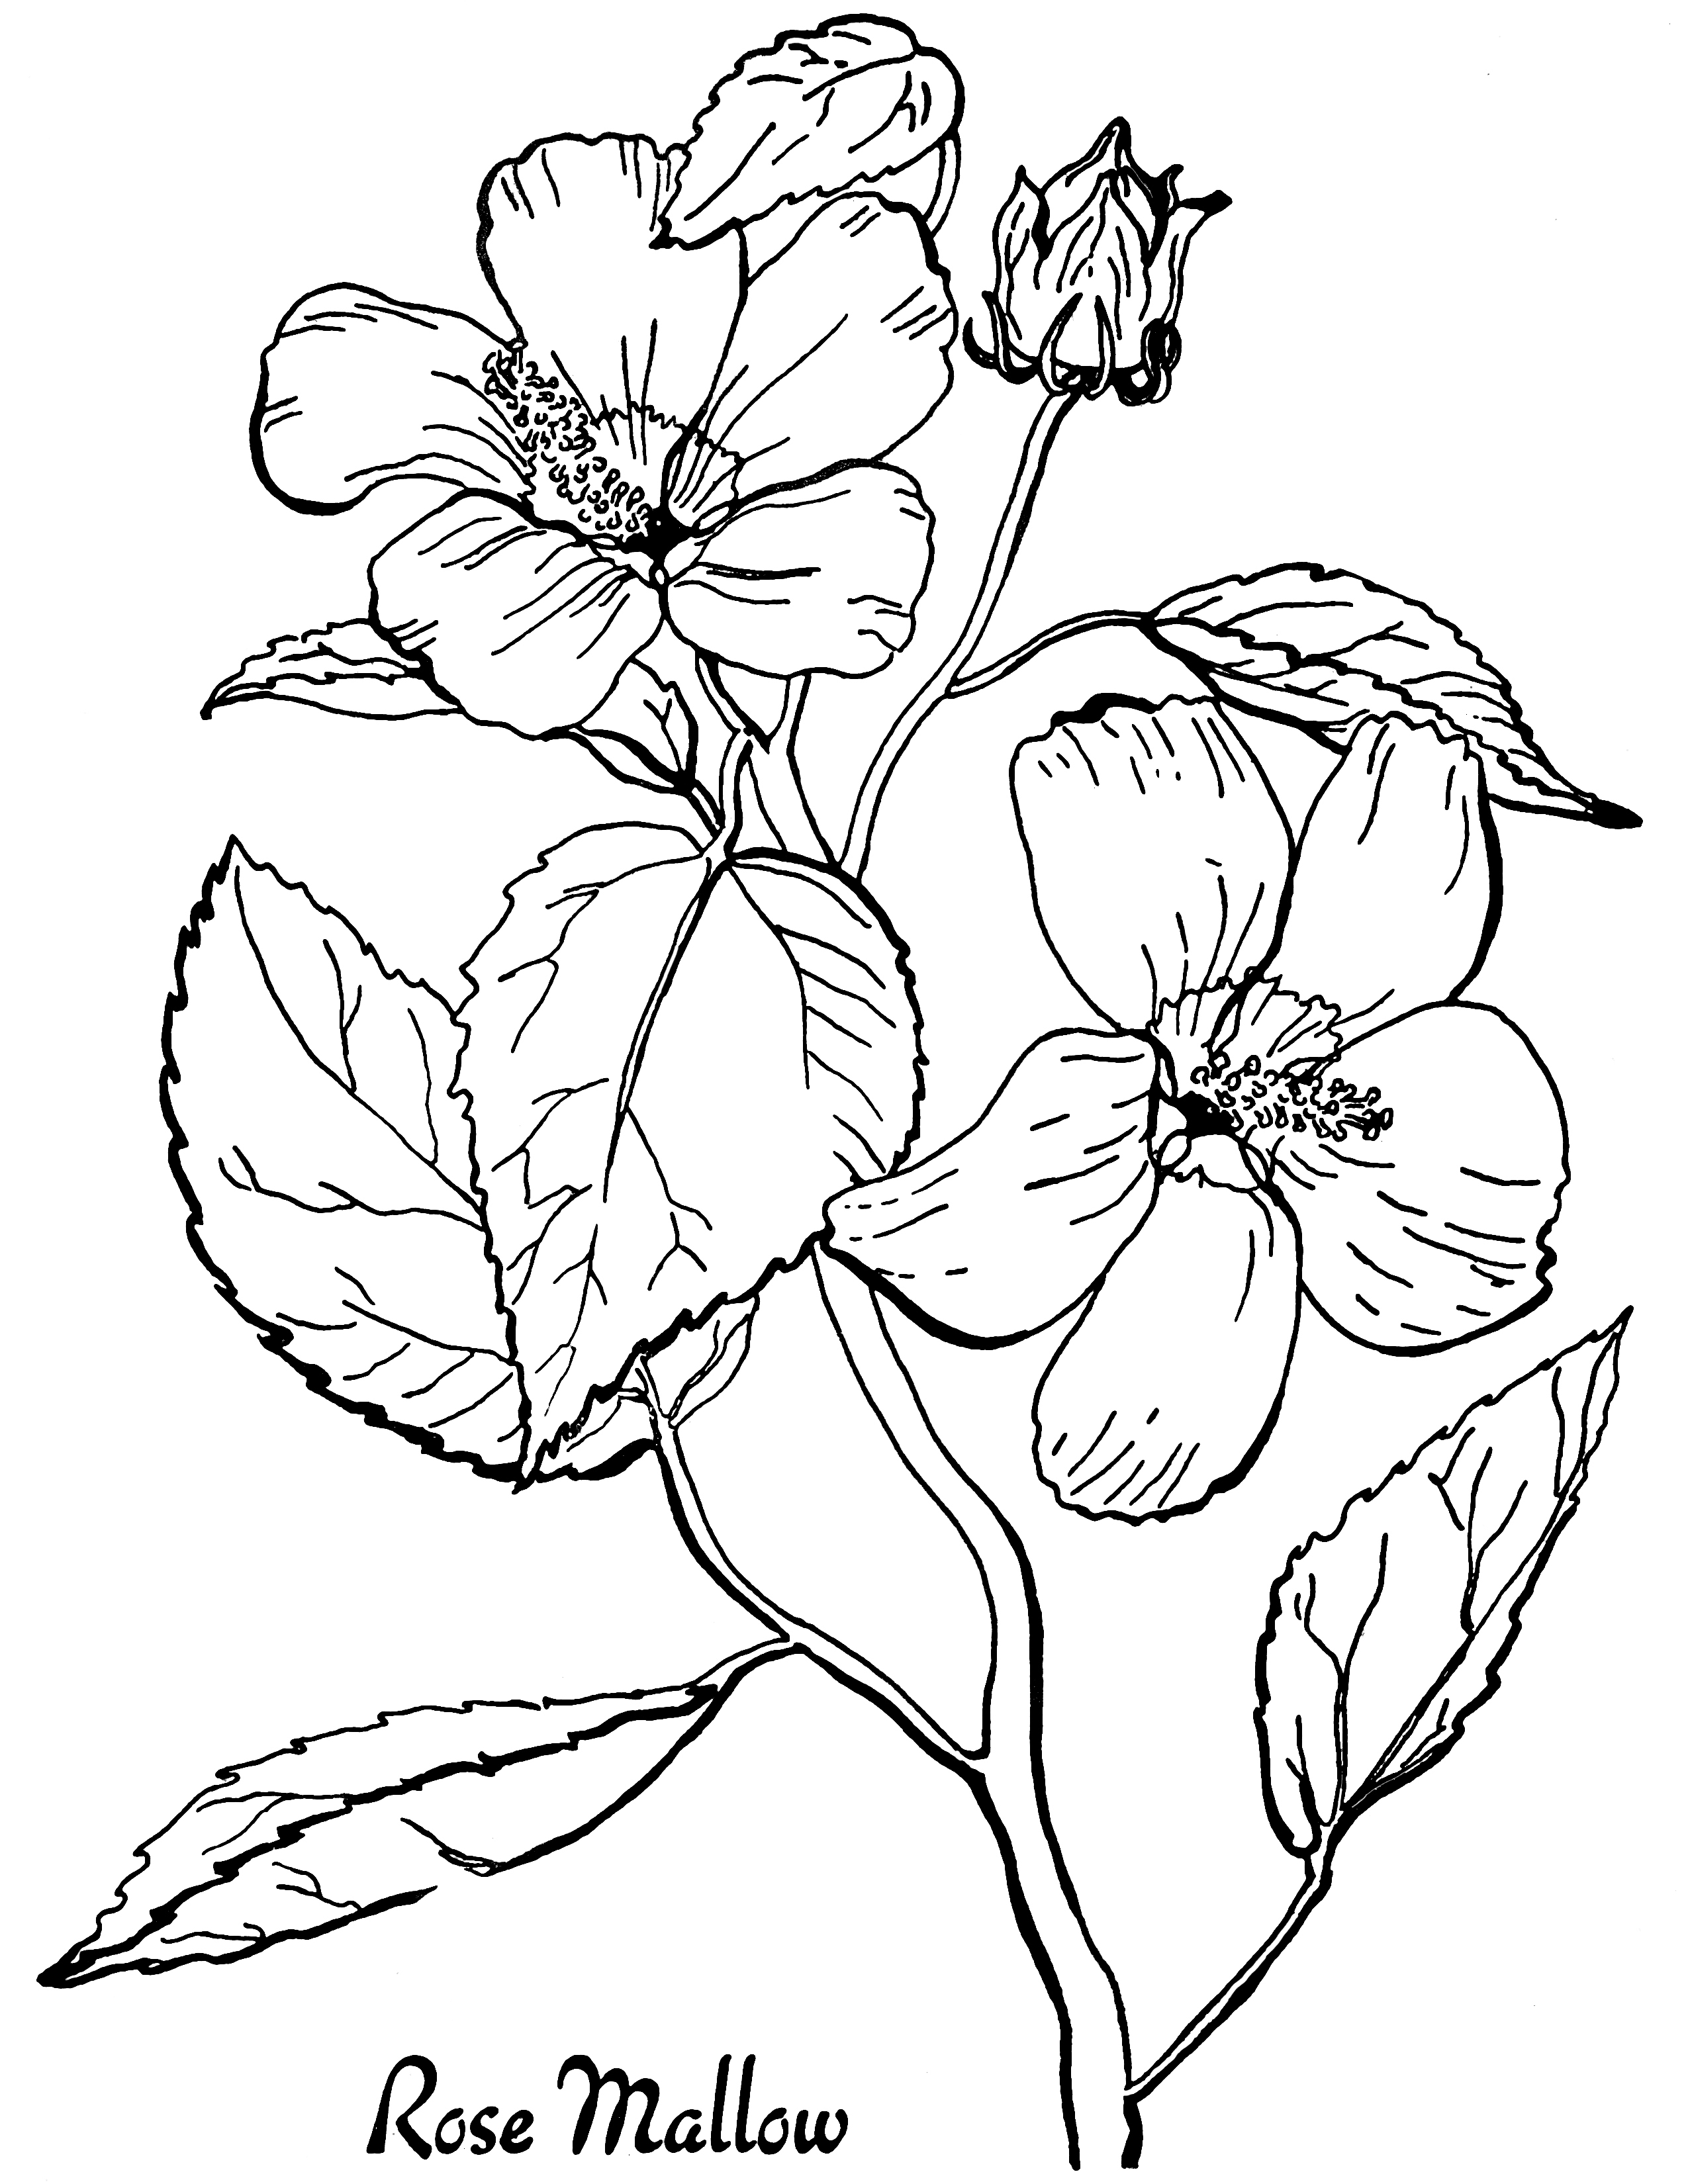 rose colouring pages rose flower blooming coloring page kids play color rose pages colouring